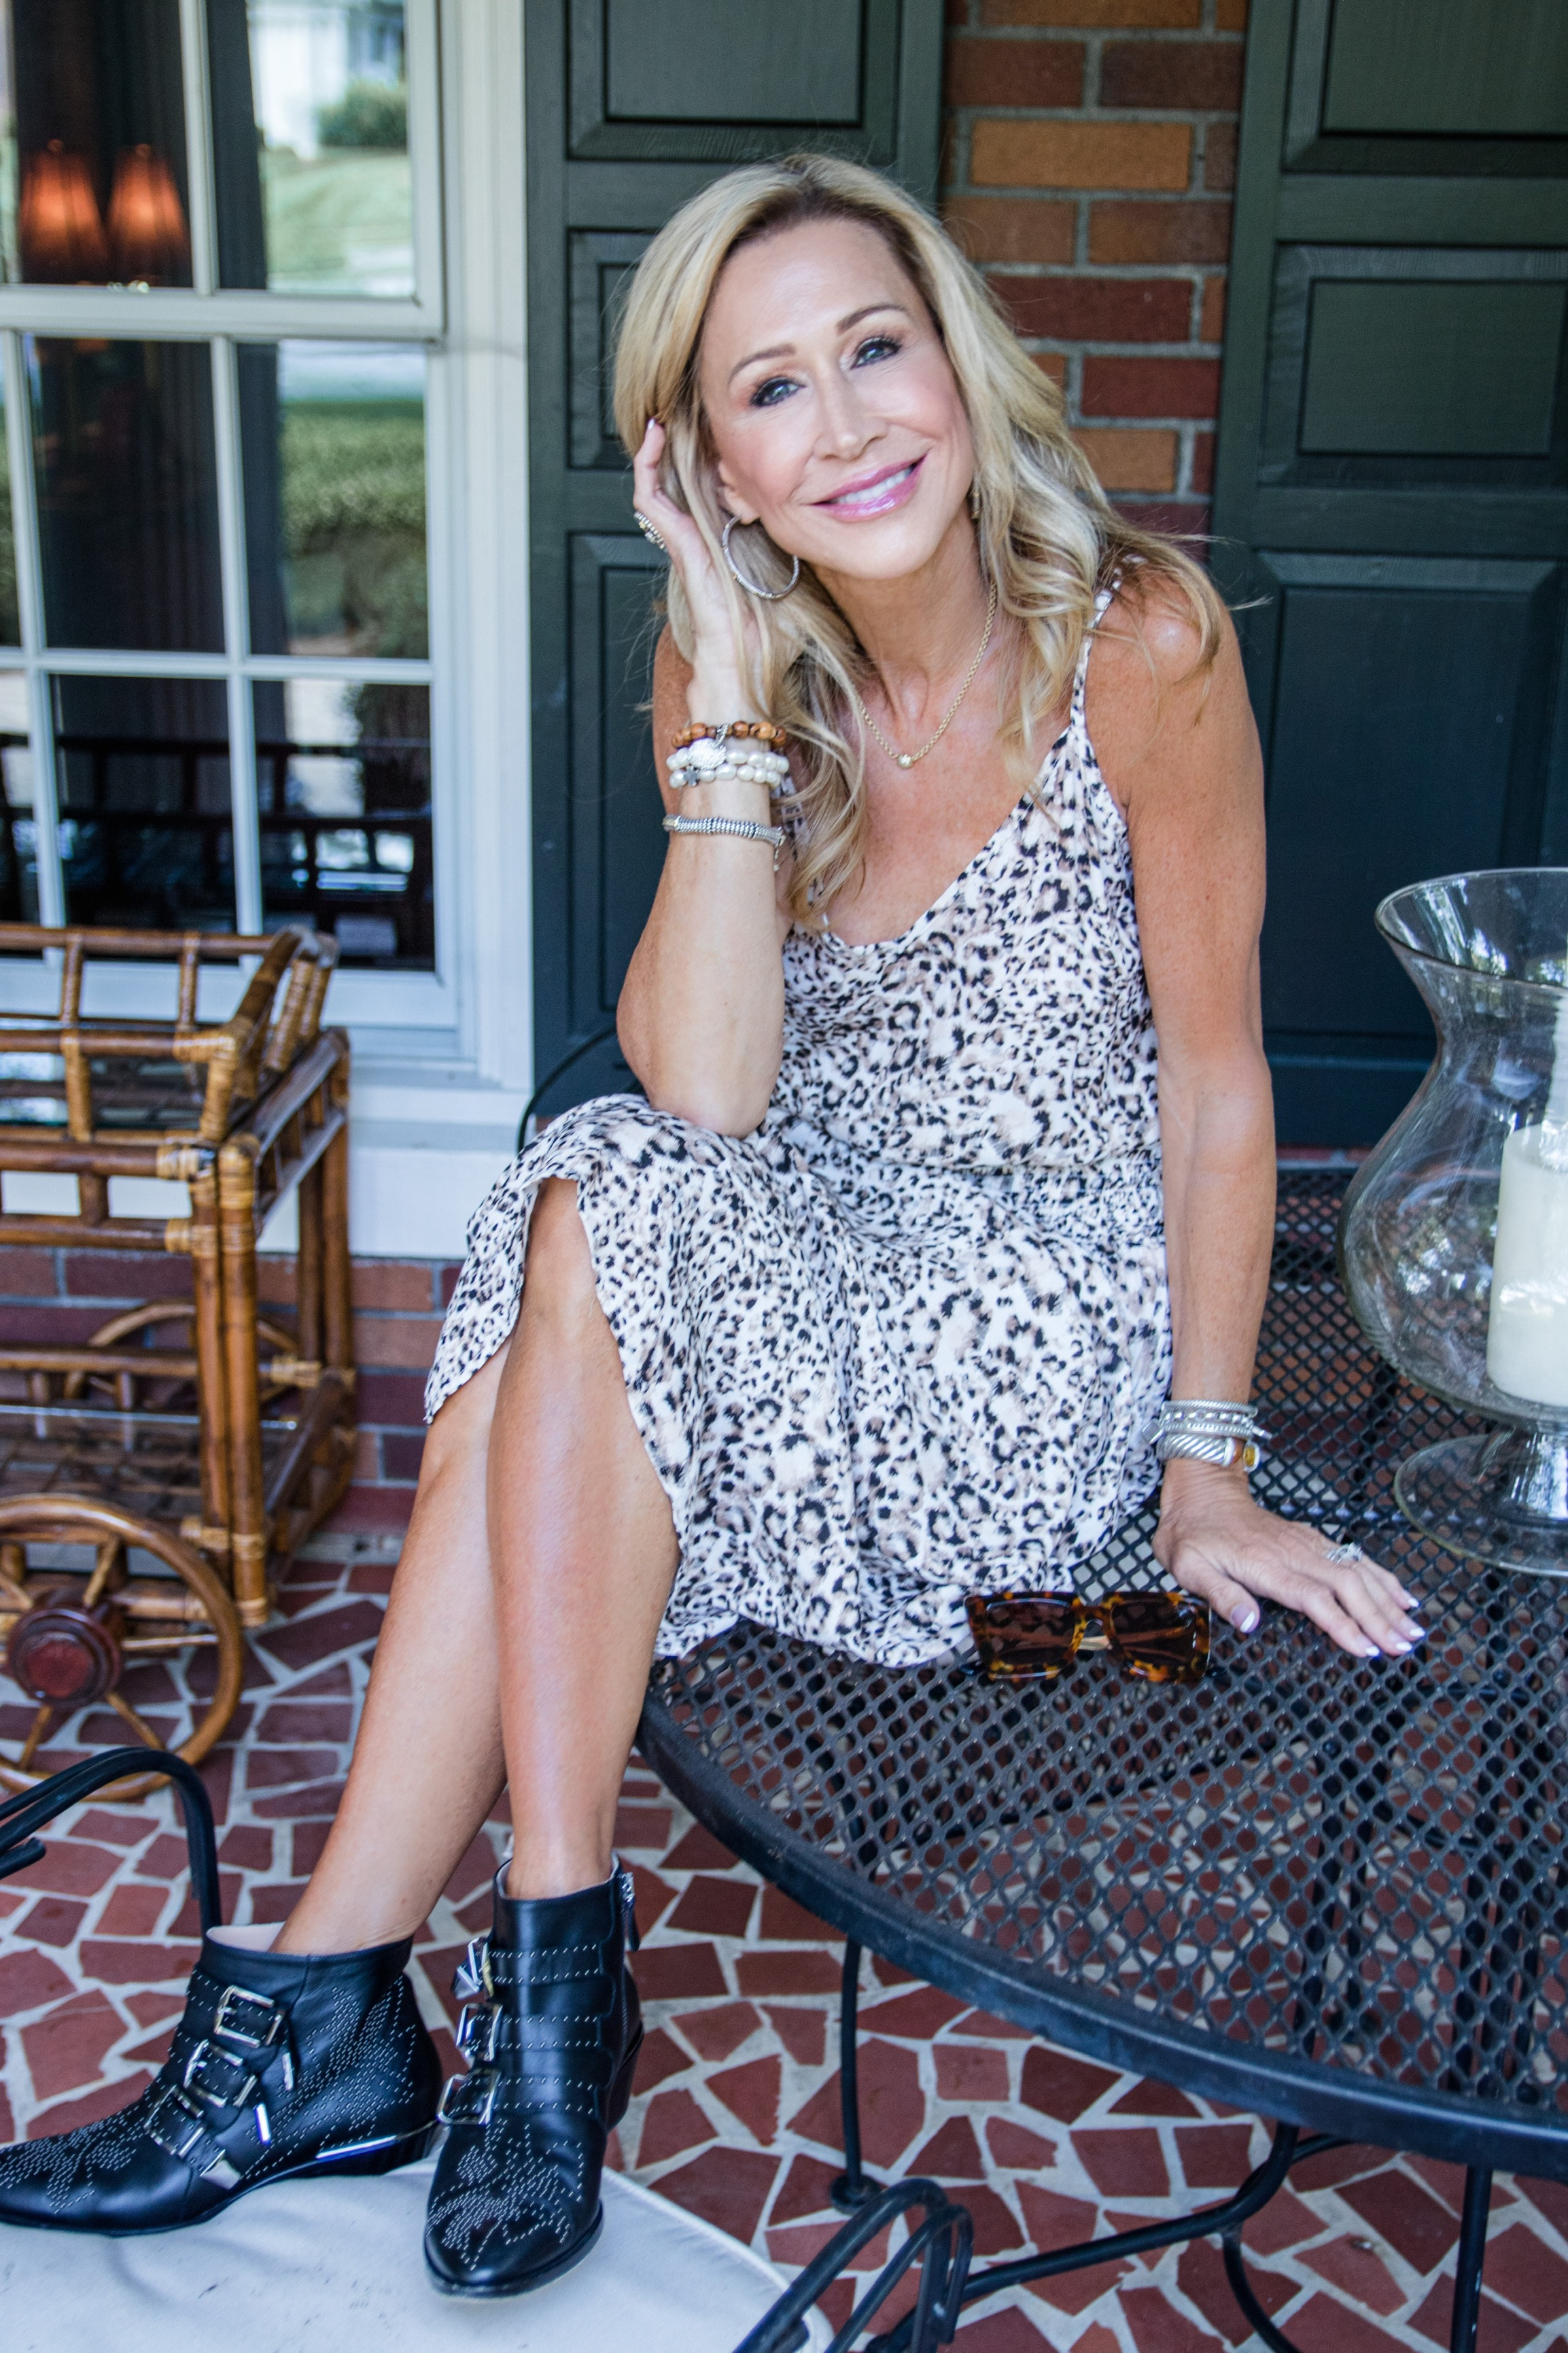 Blue Life leopard print dress - Fall transitional outfit - Crazy Blonde Style